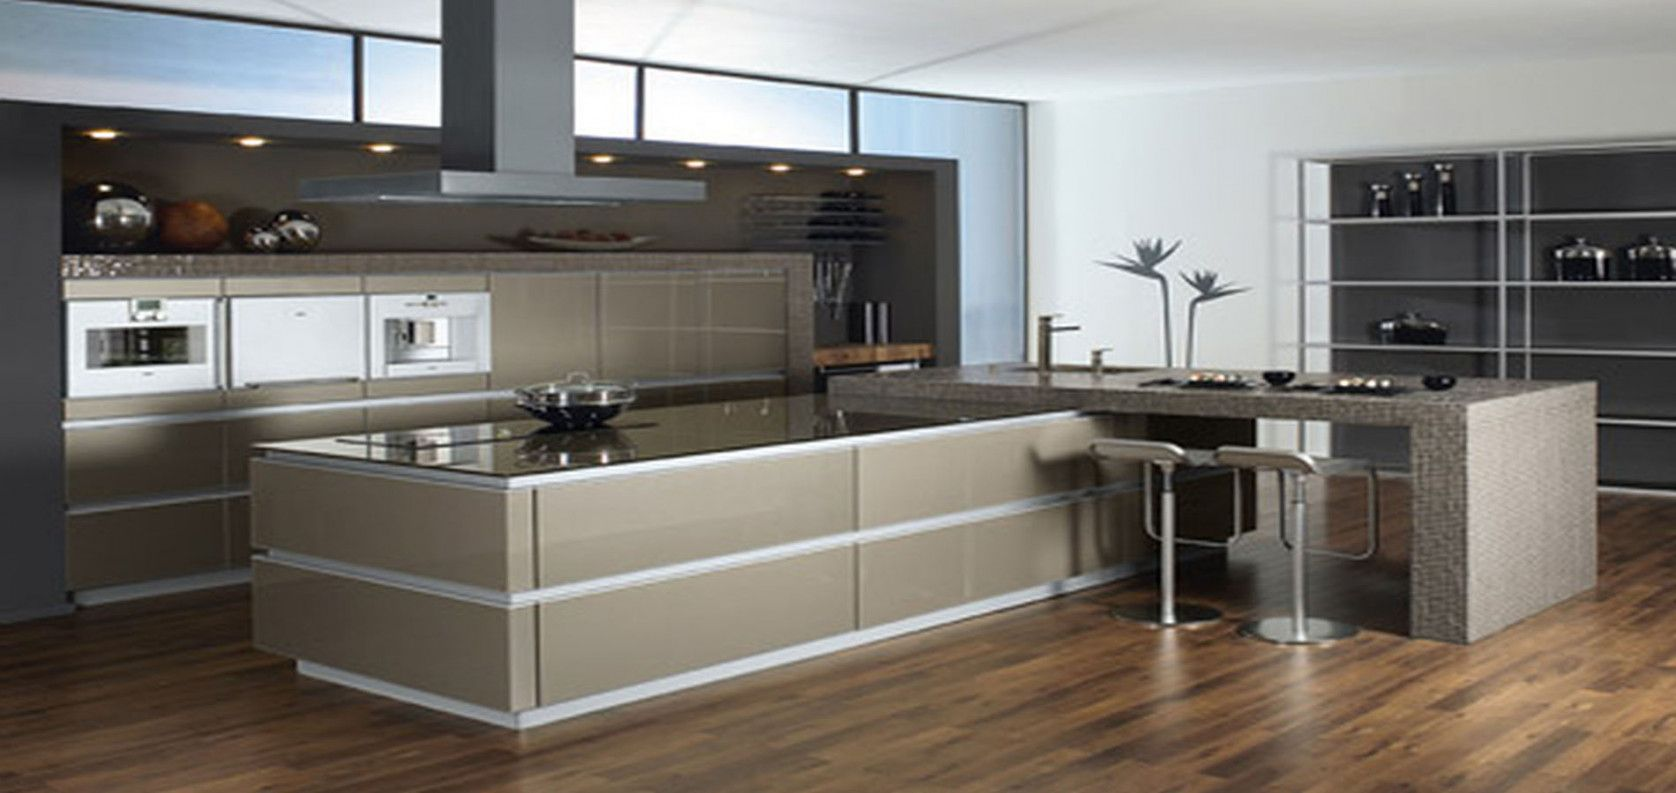 Genial 20+ Buy Modern Kitchen Cabinets Online   Kitchen Counter Top Ideas Check  More At Http